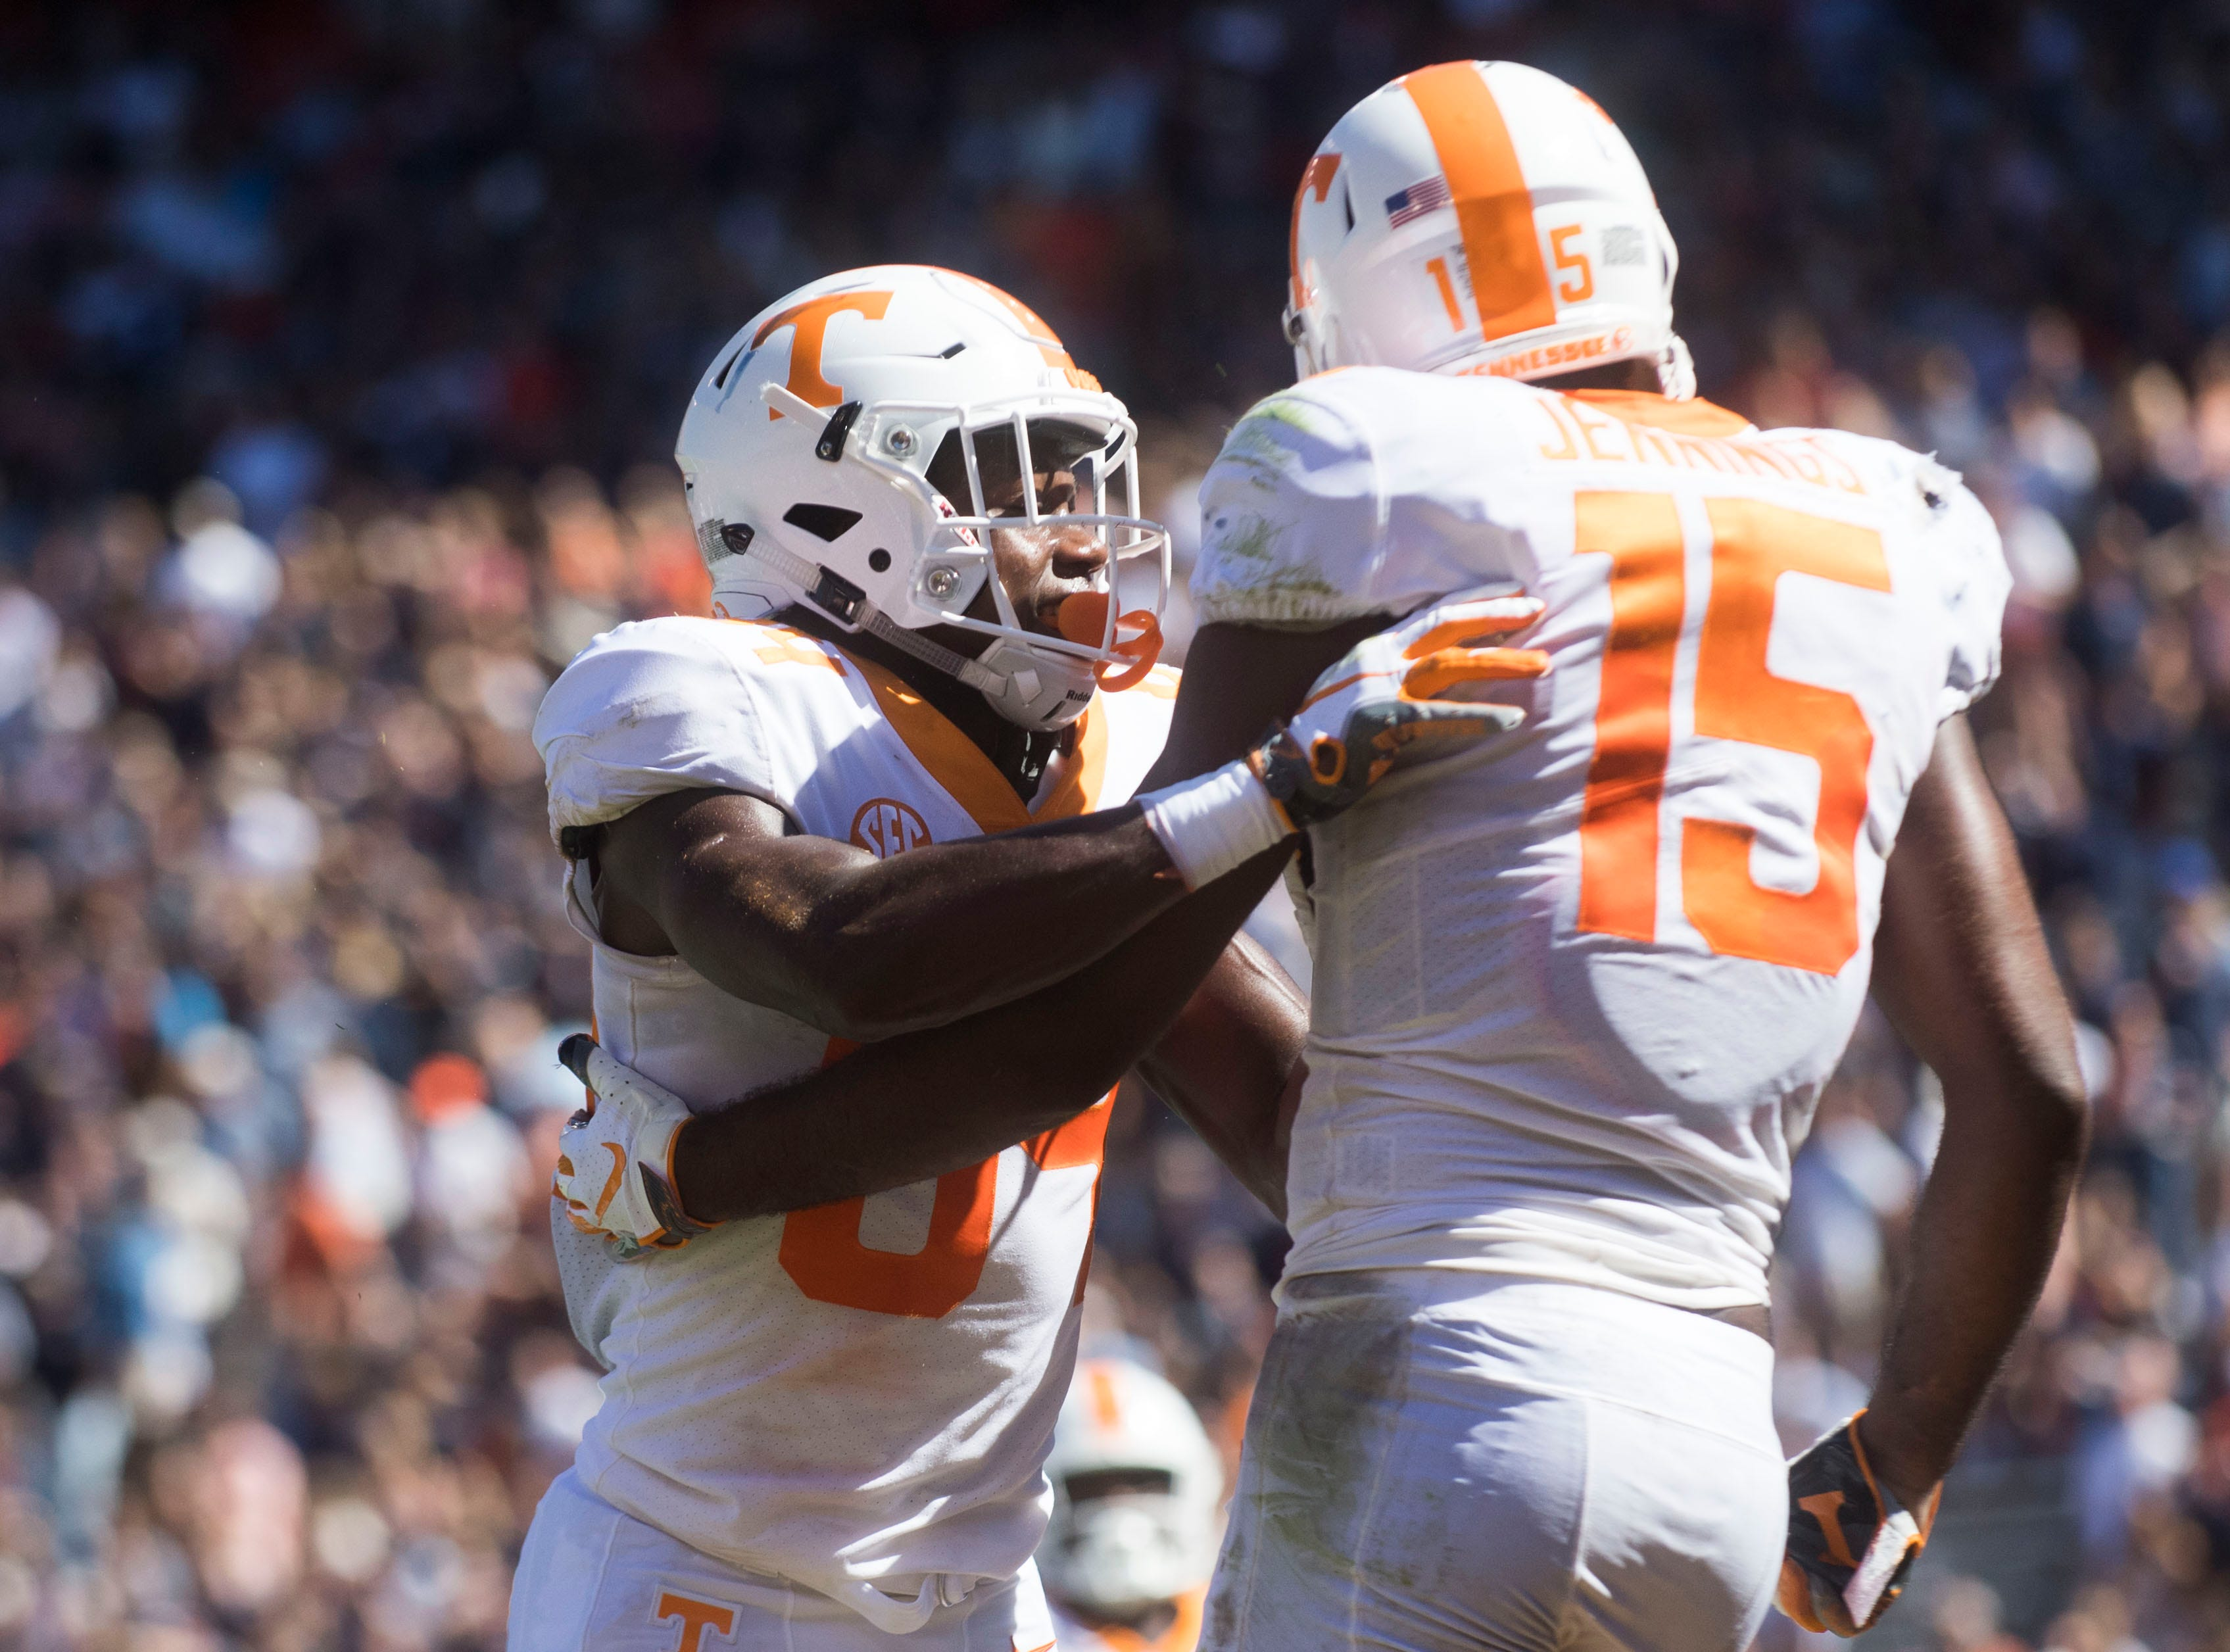 Tennessee wide receiver Josh Palmer (84) and Tennessee wide receiver Jauan Jennings (15) celebrate Jenning's touch down during a game between Tennessee and Auburn at Jordan-Hare Stadium in Auburn, Ala. Saturday, Oct. 13, 2018. Tennessee defeated Auburn 30-24.